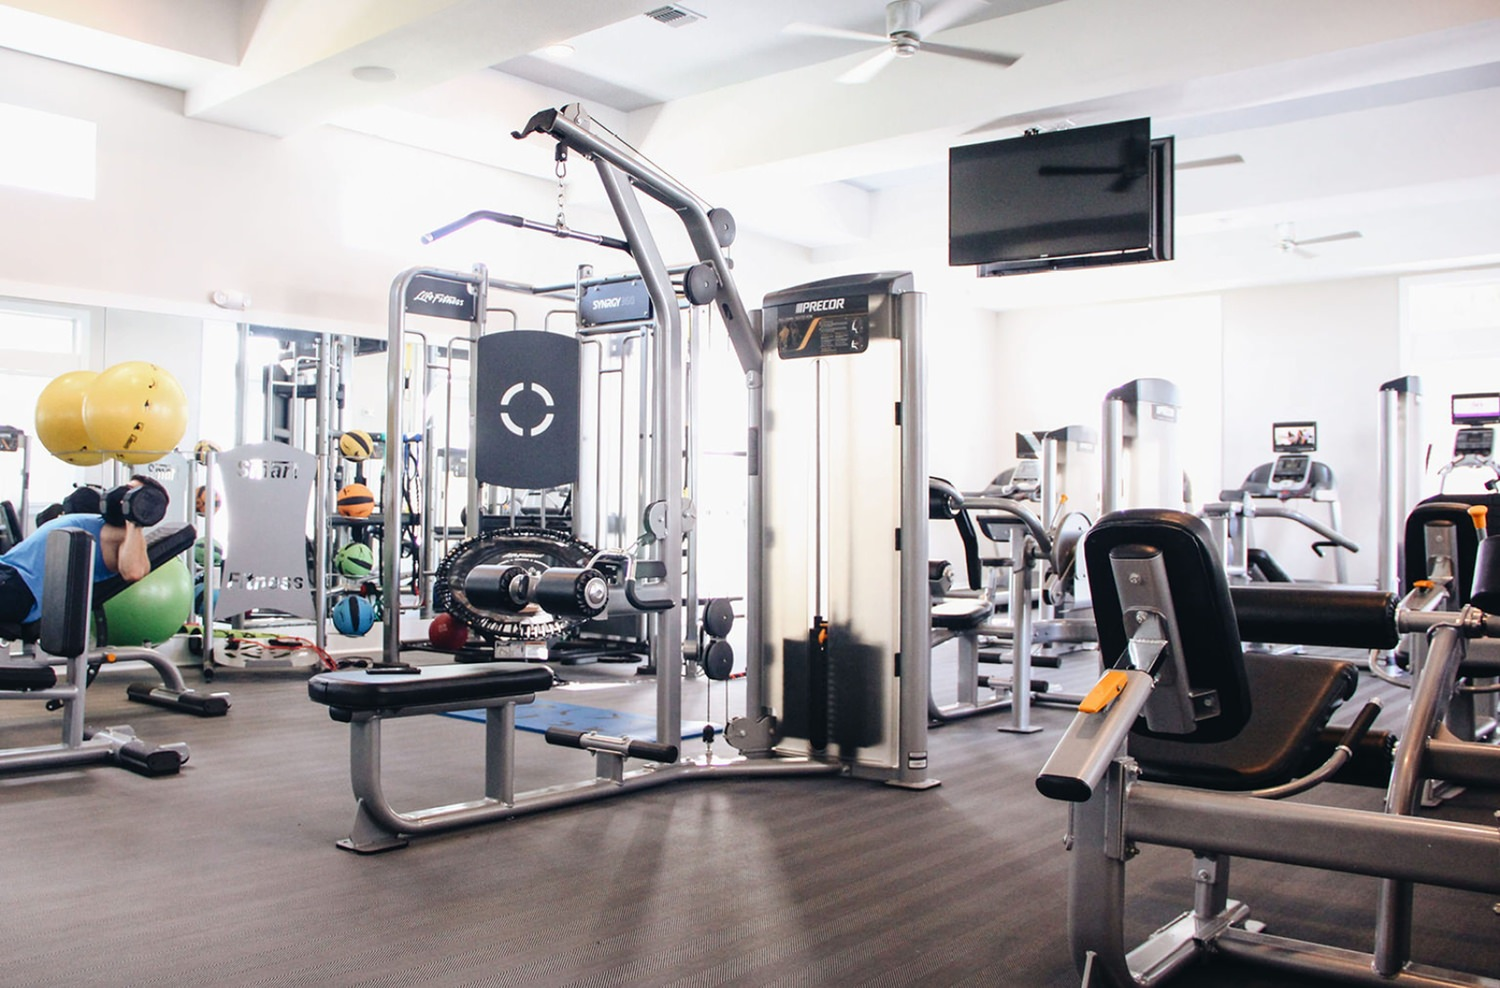 A few people inside of a gym room full of weight machines and other exercise equipment.